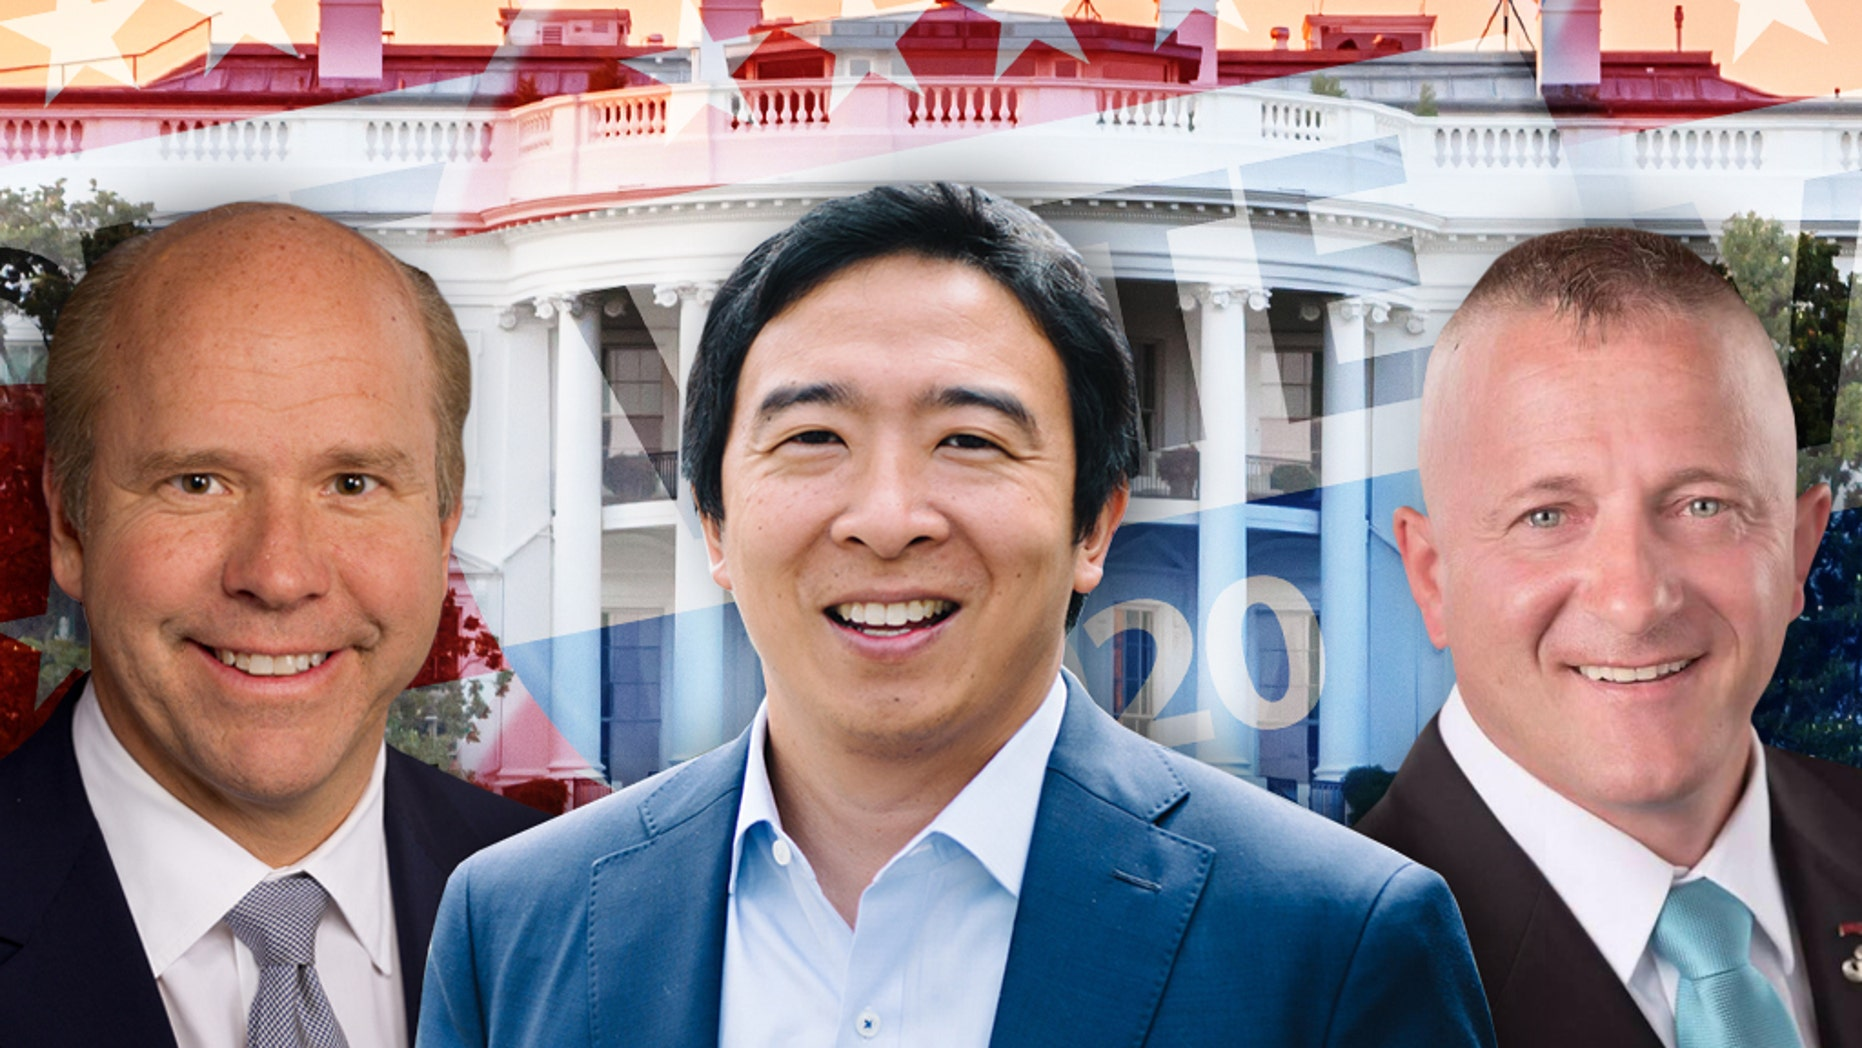 John Delaney, Andrew Yang and Richard Ojeda (from left to right) are among the longshot candidates seeking the Democratic presidential nomination in 2020.